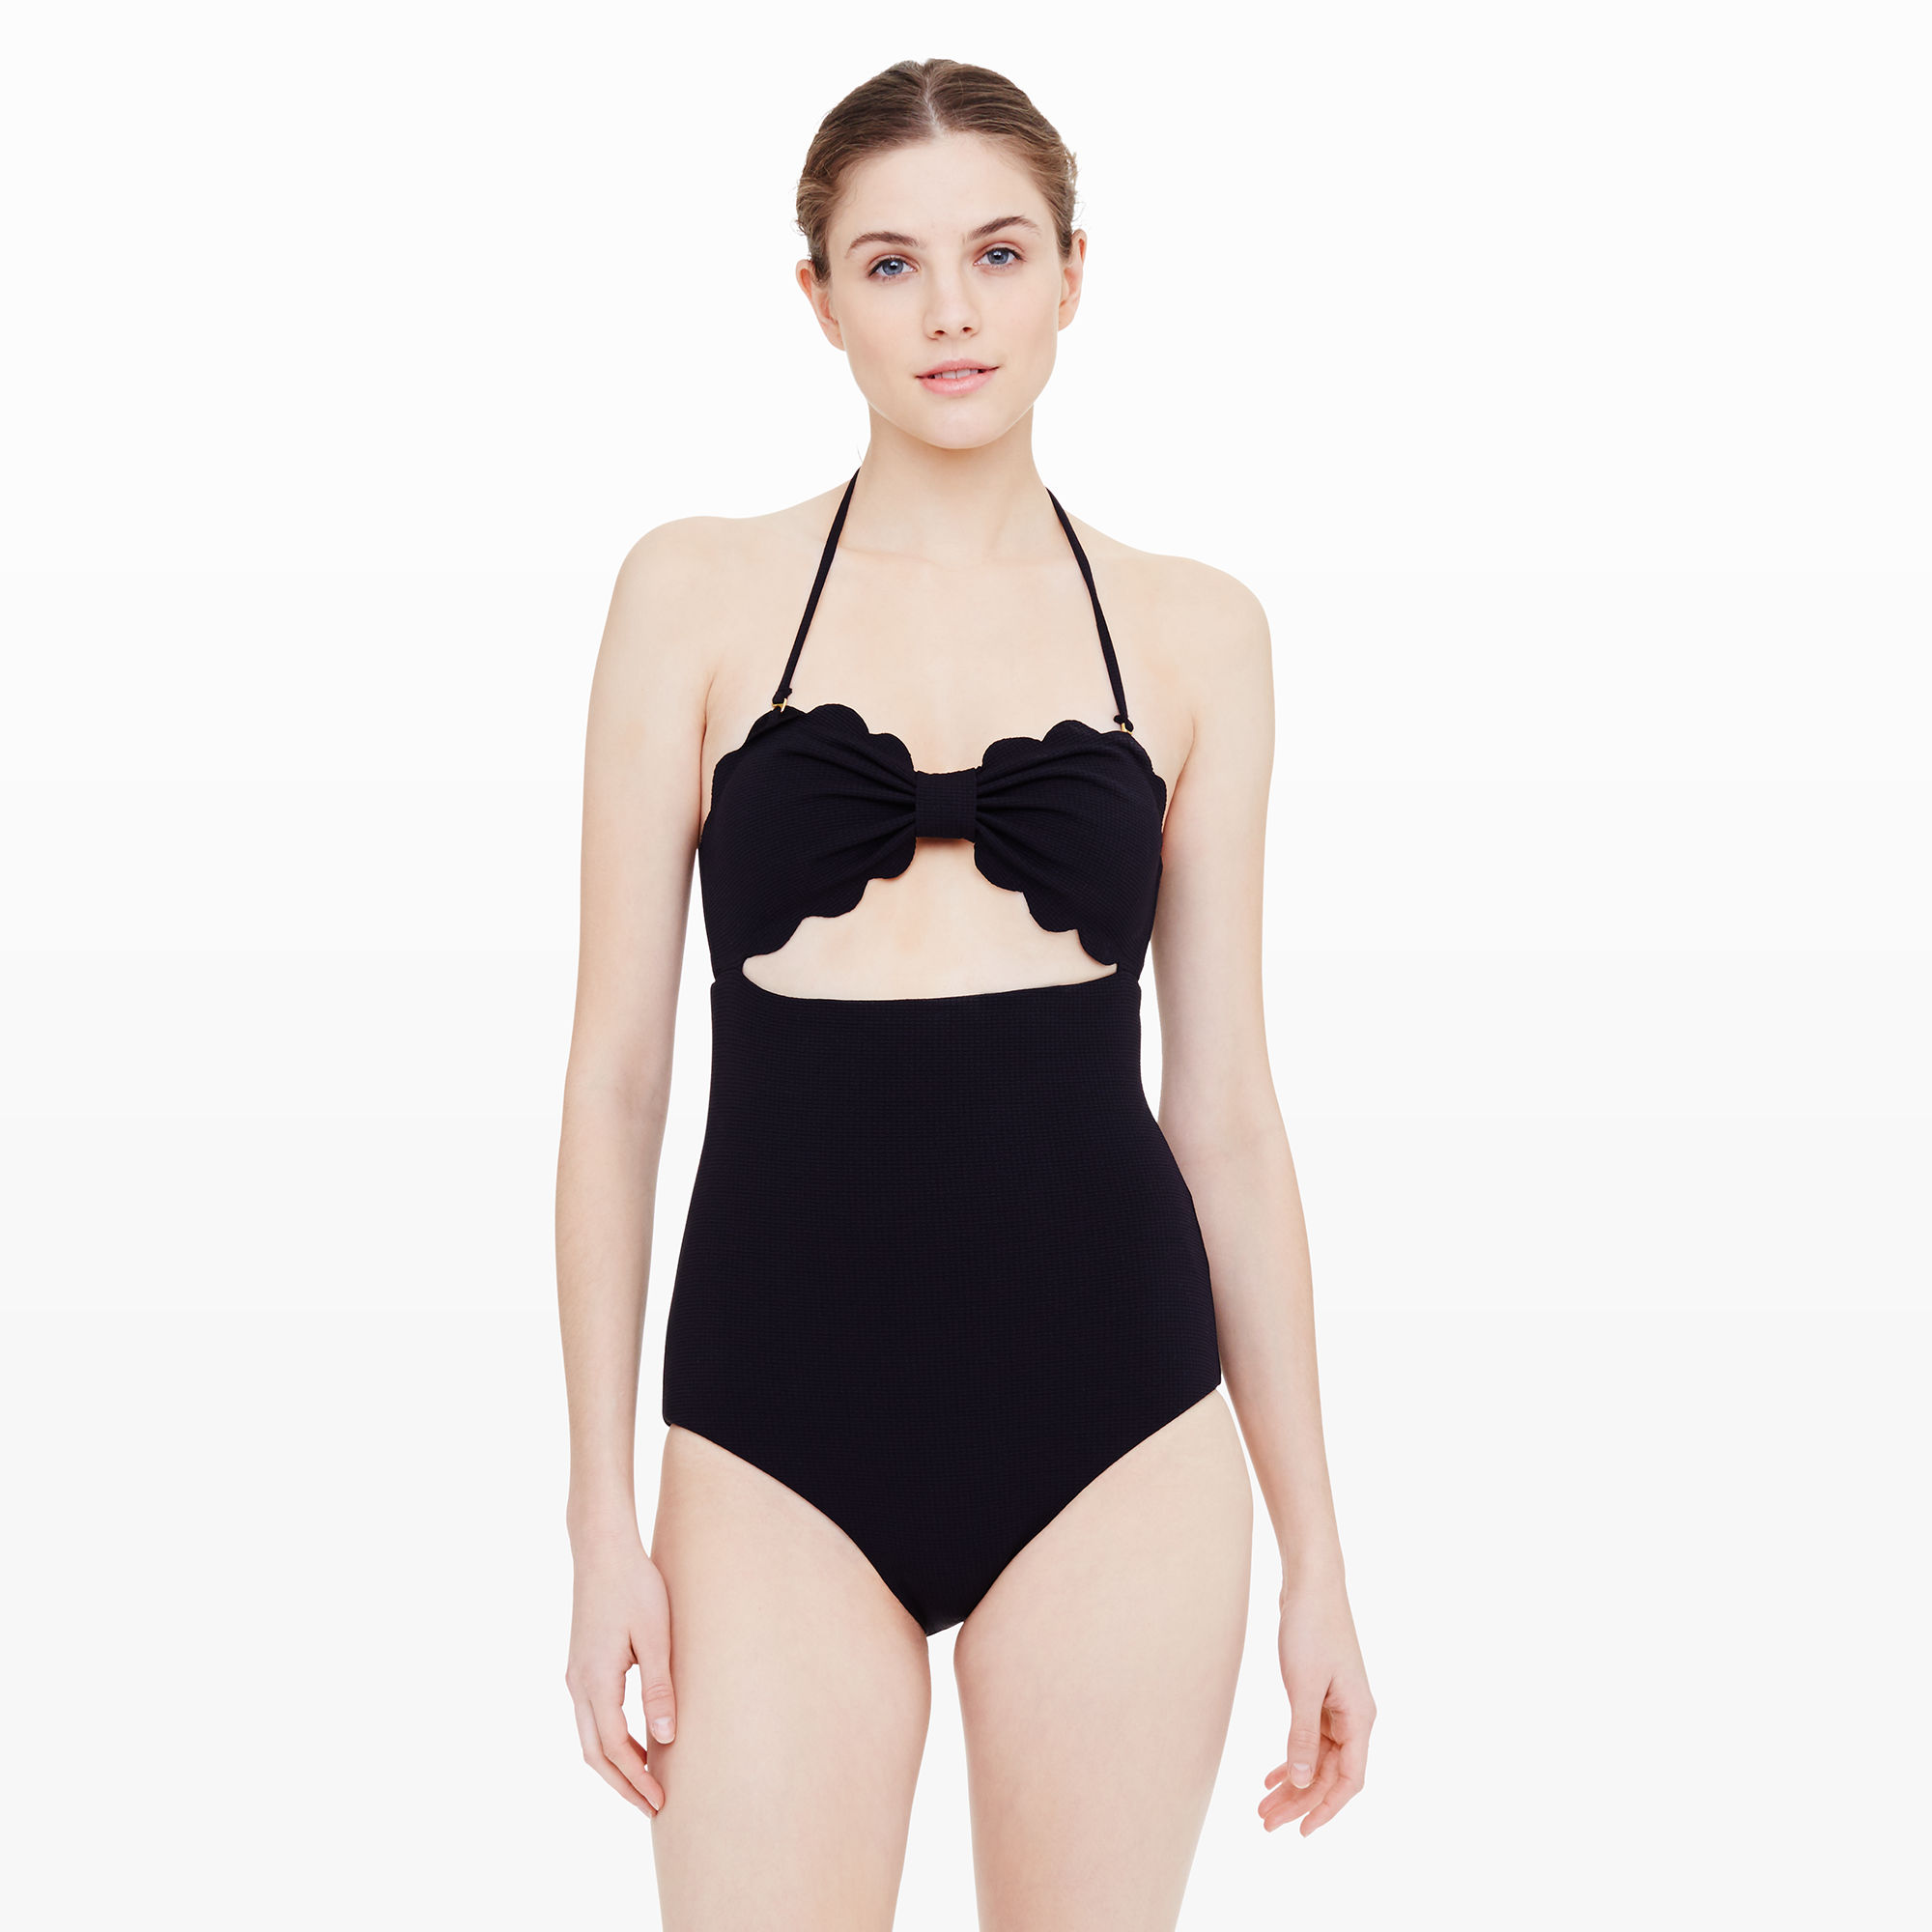 Model wears a black one-piece swimsuit with cut-out detail